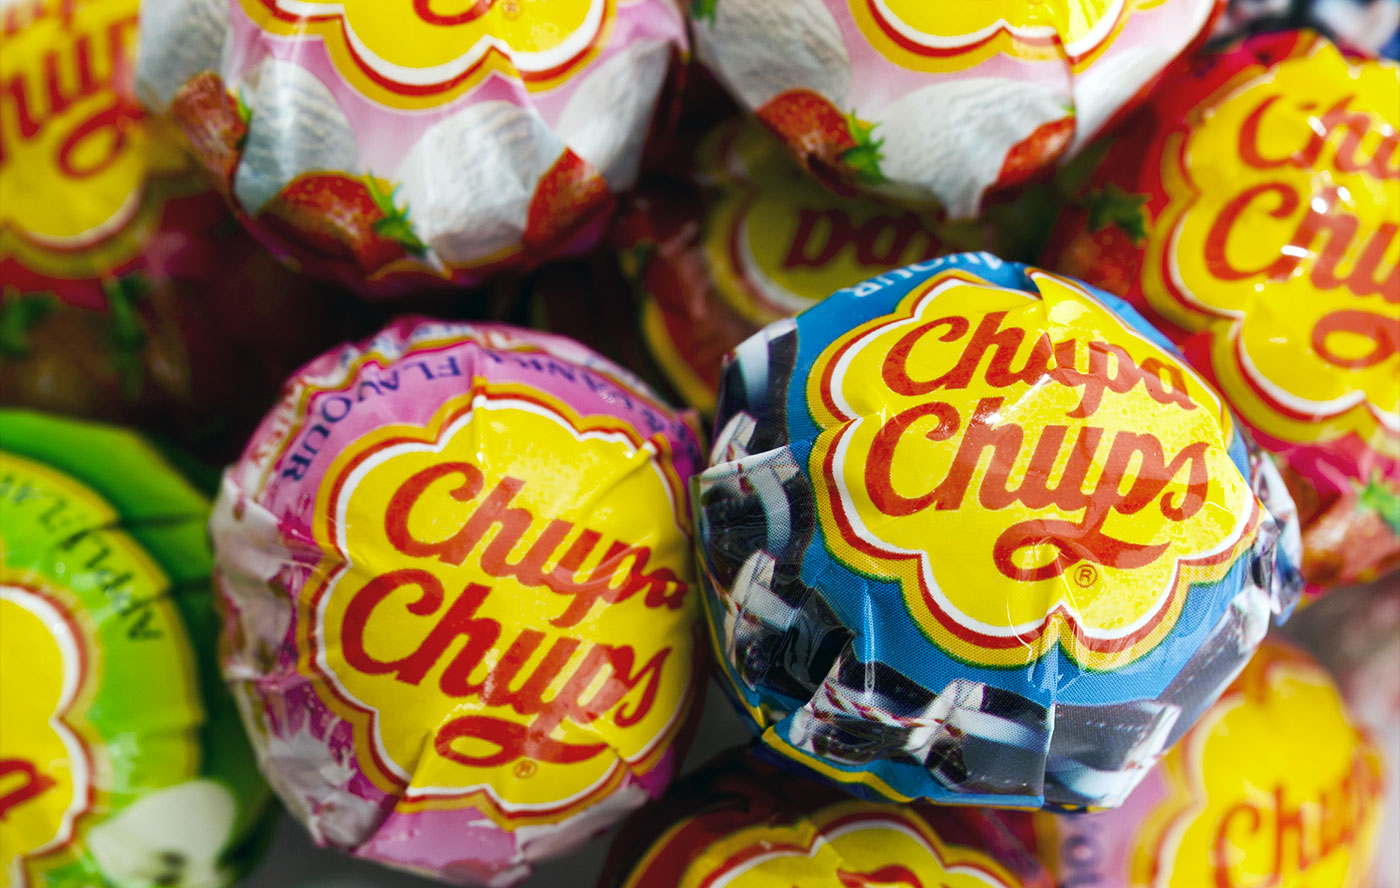 chupa chups logo designed by salvador dali logo design love